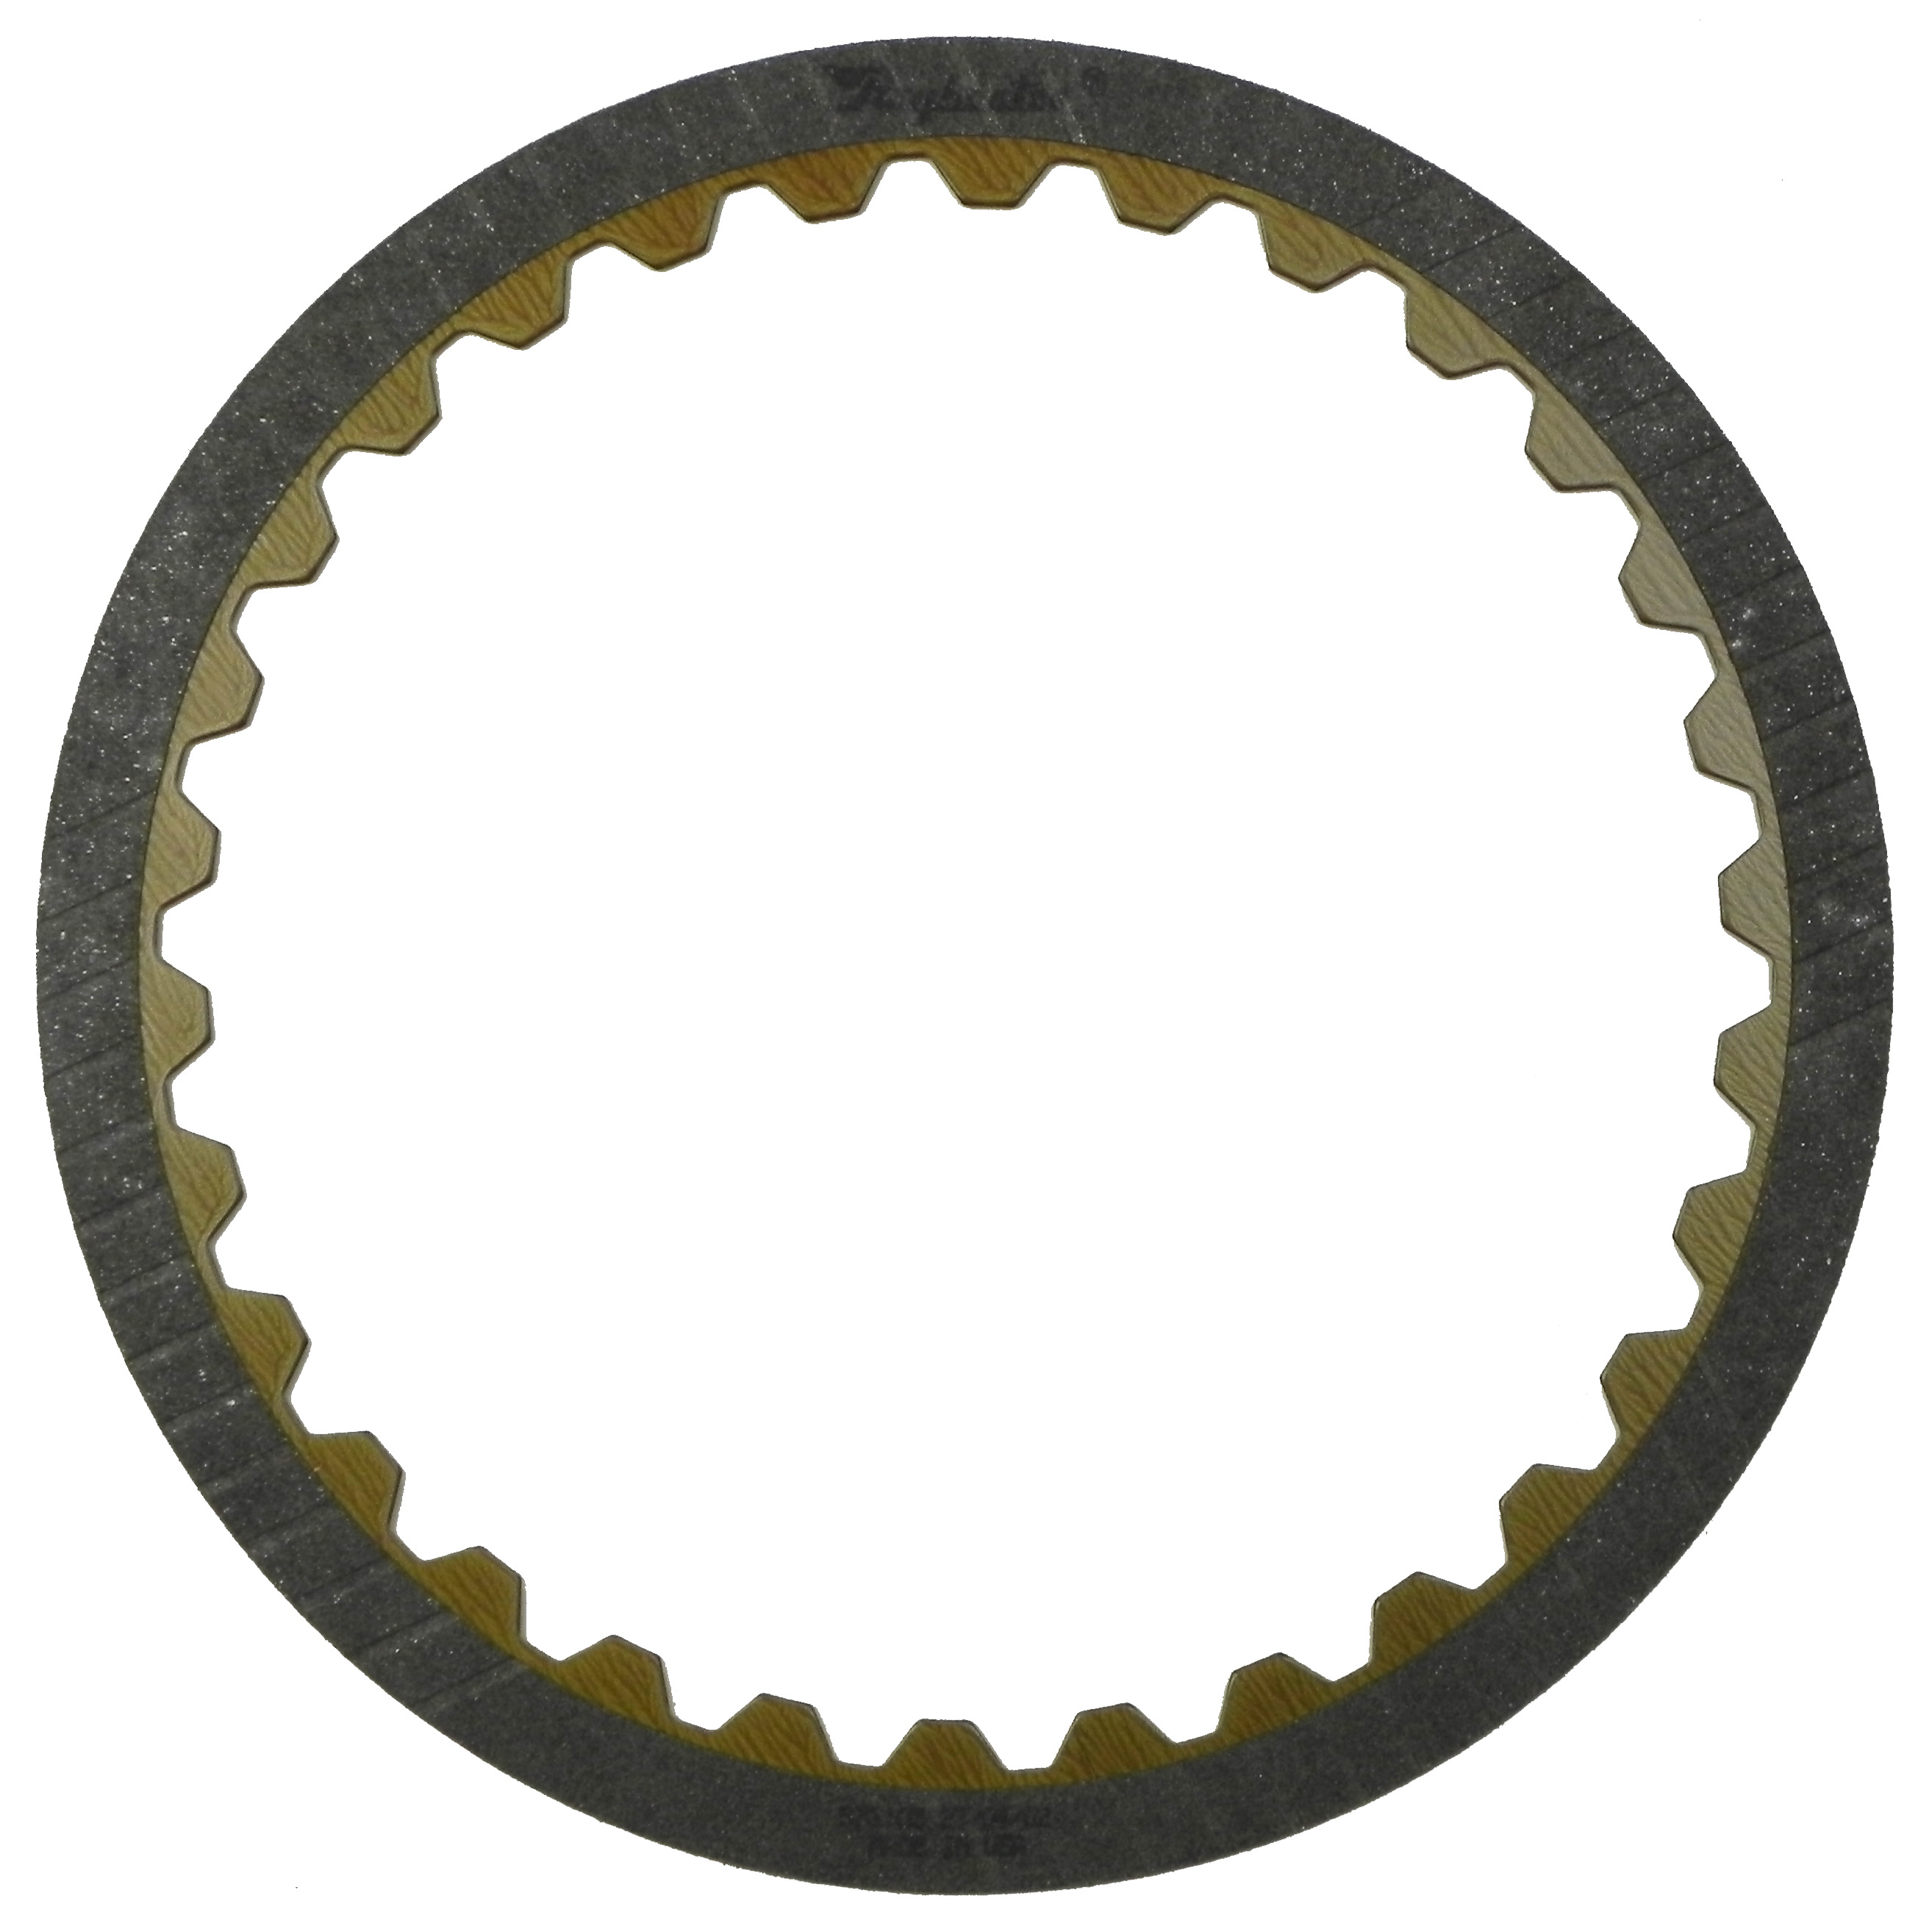 R573105 | 1995-ON Friction Clutch Plate High Energy Low, Reverse High Energy